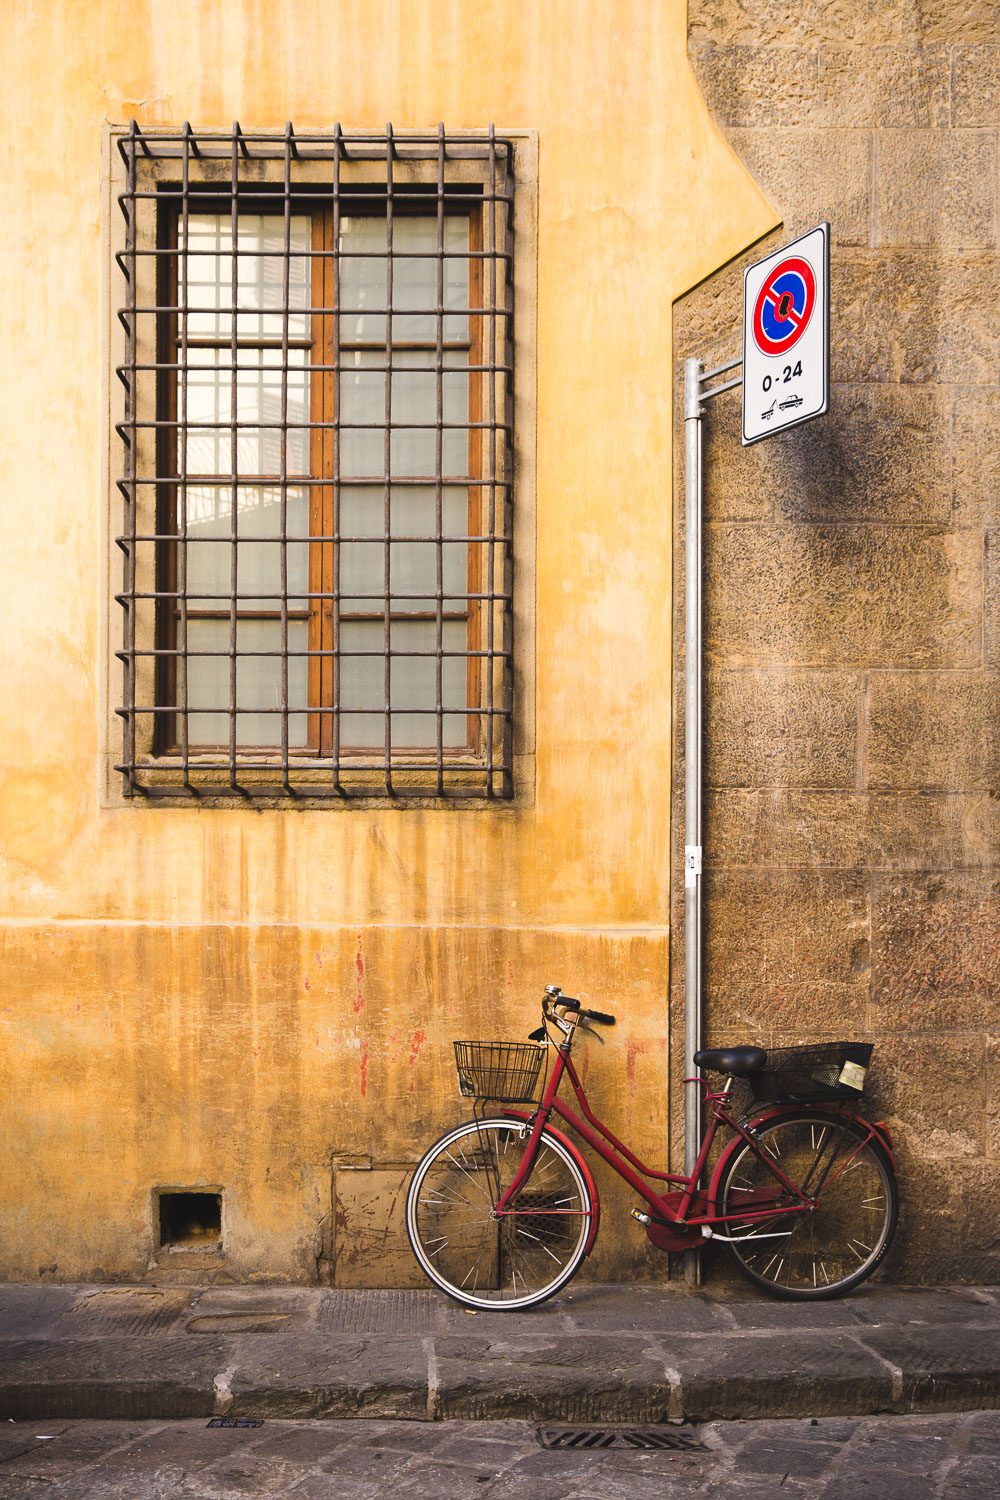 cp firenze bike window site.jpg